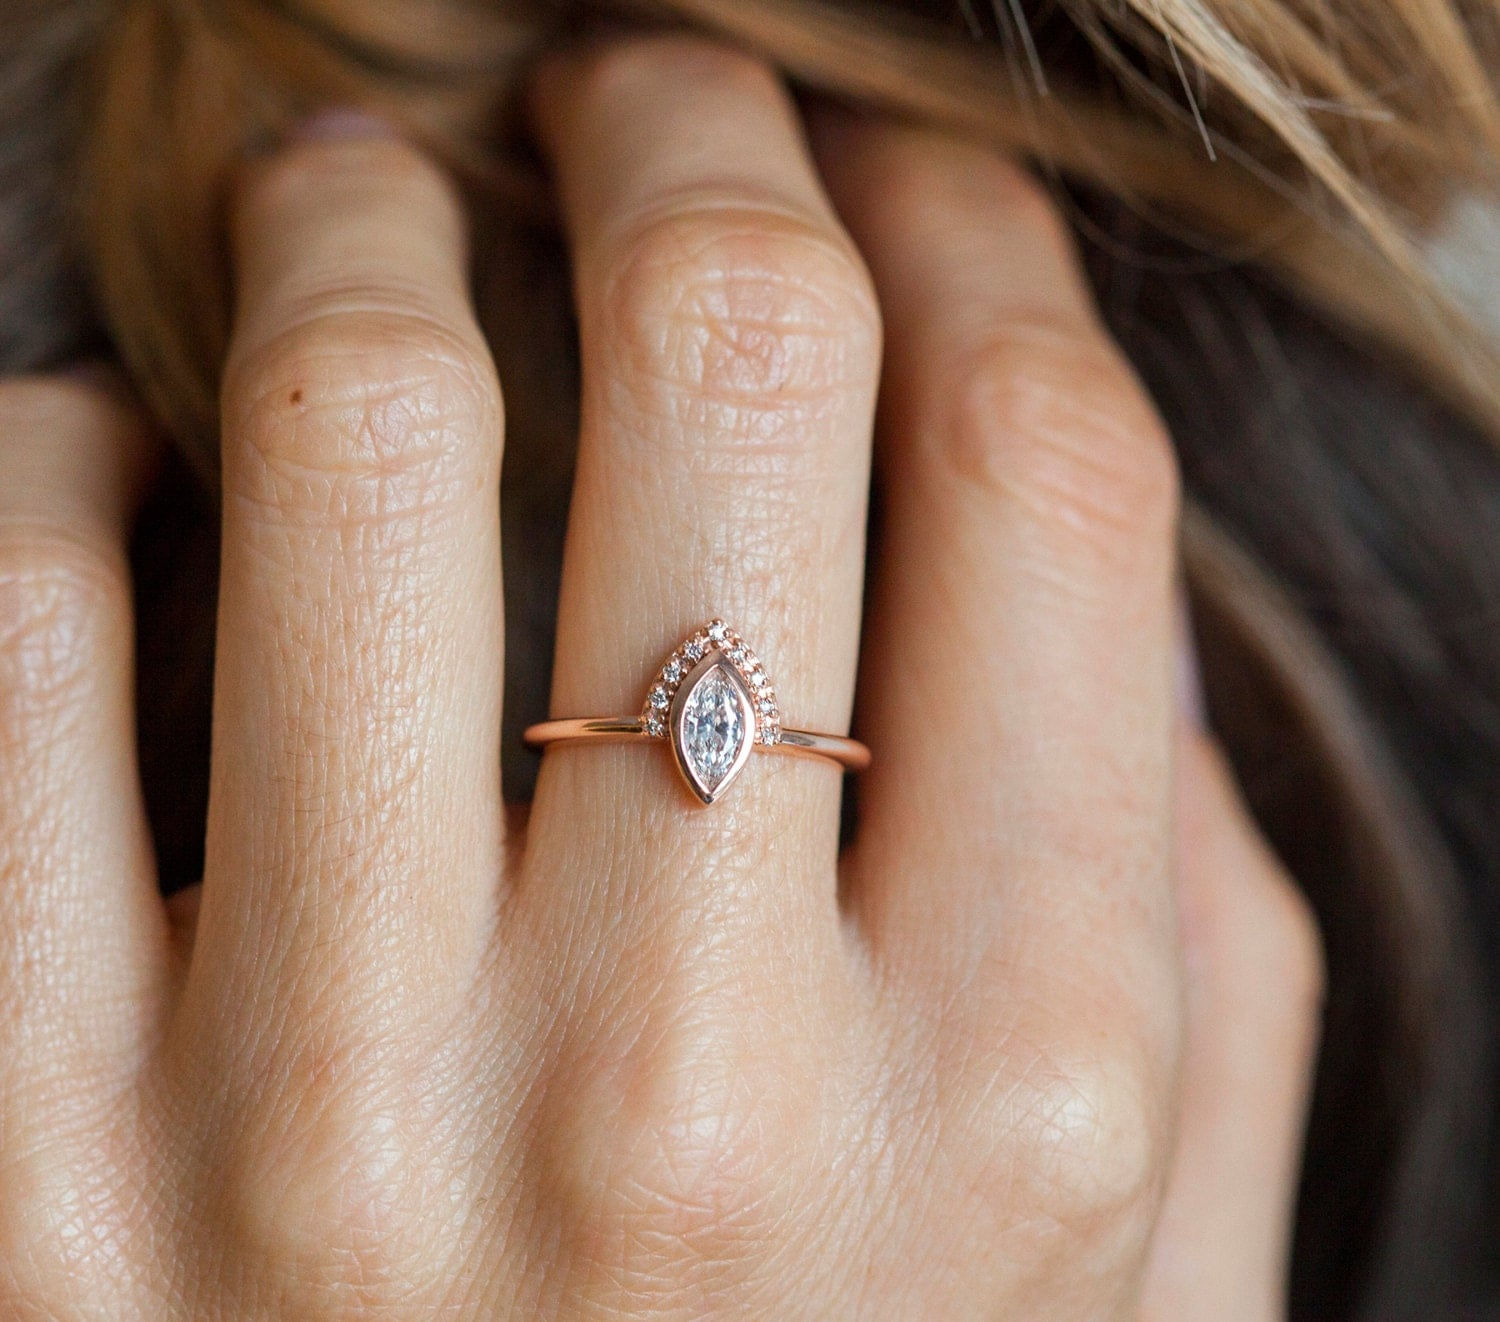 EastWest Solitaire Engagement Ring in Rose Gold  Blue Nile